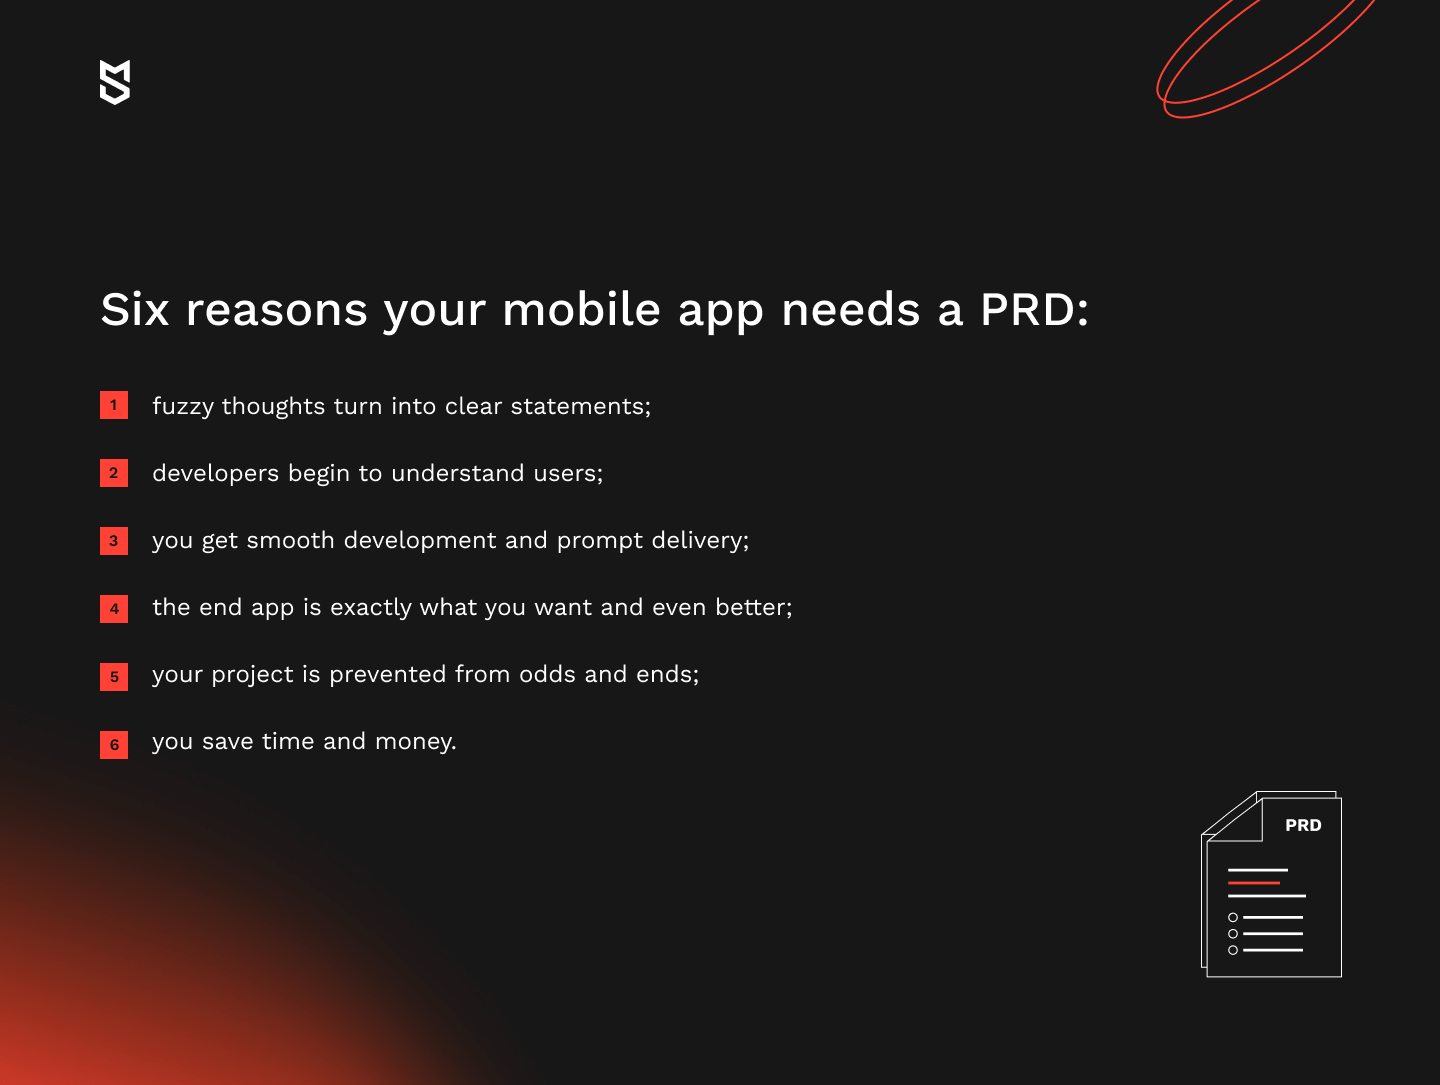 Six reasons your mobile app needs a prd